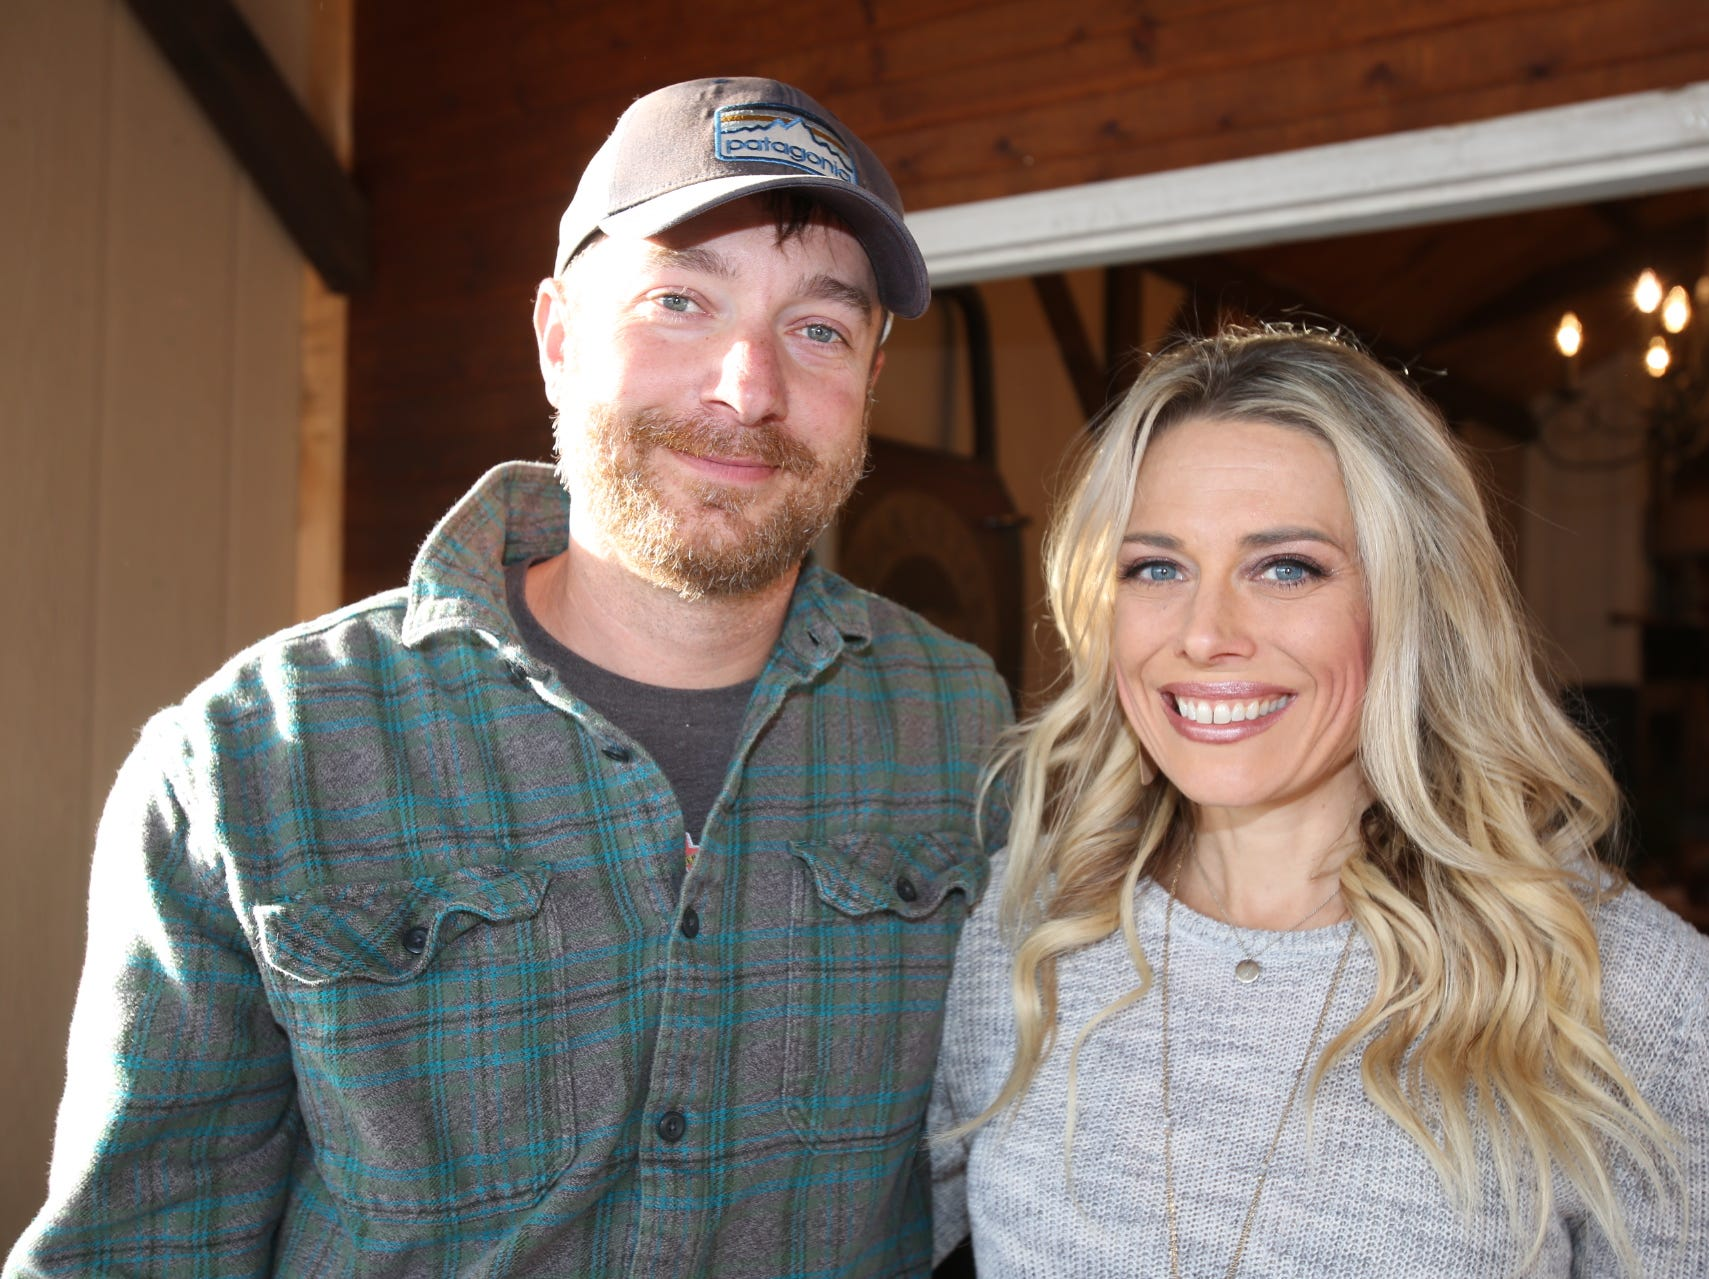 Chad and Jessica Kold